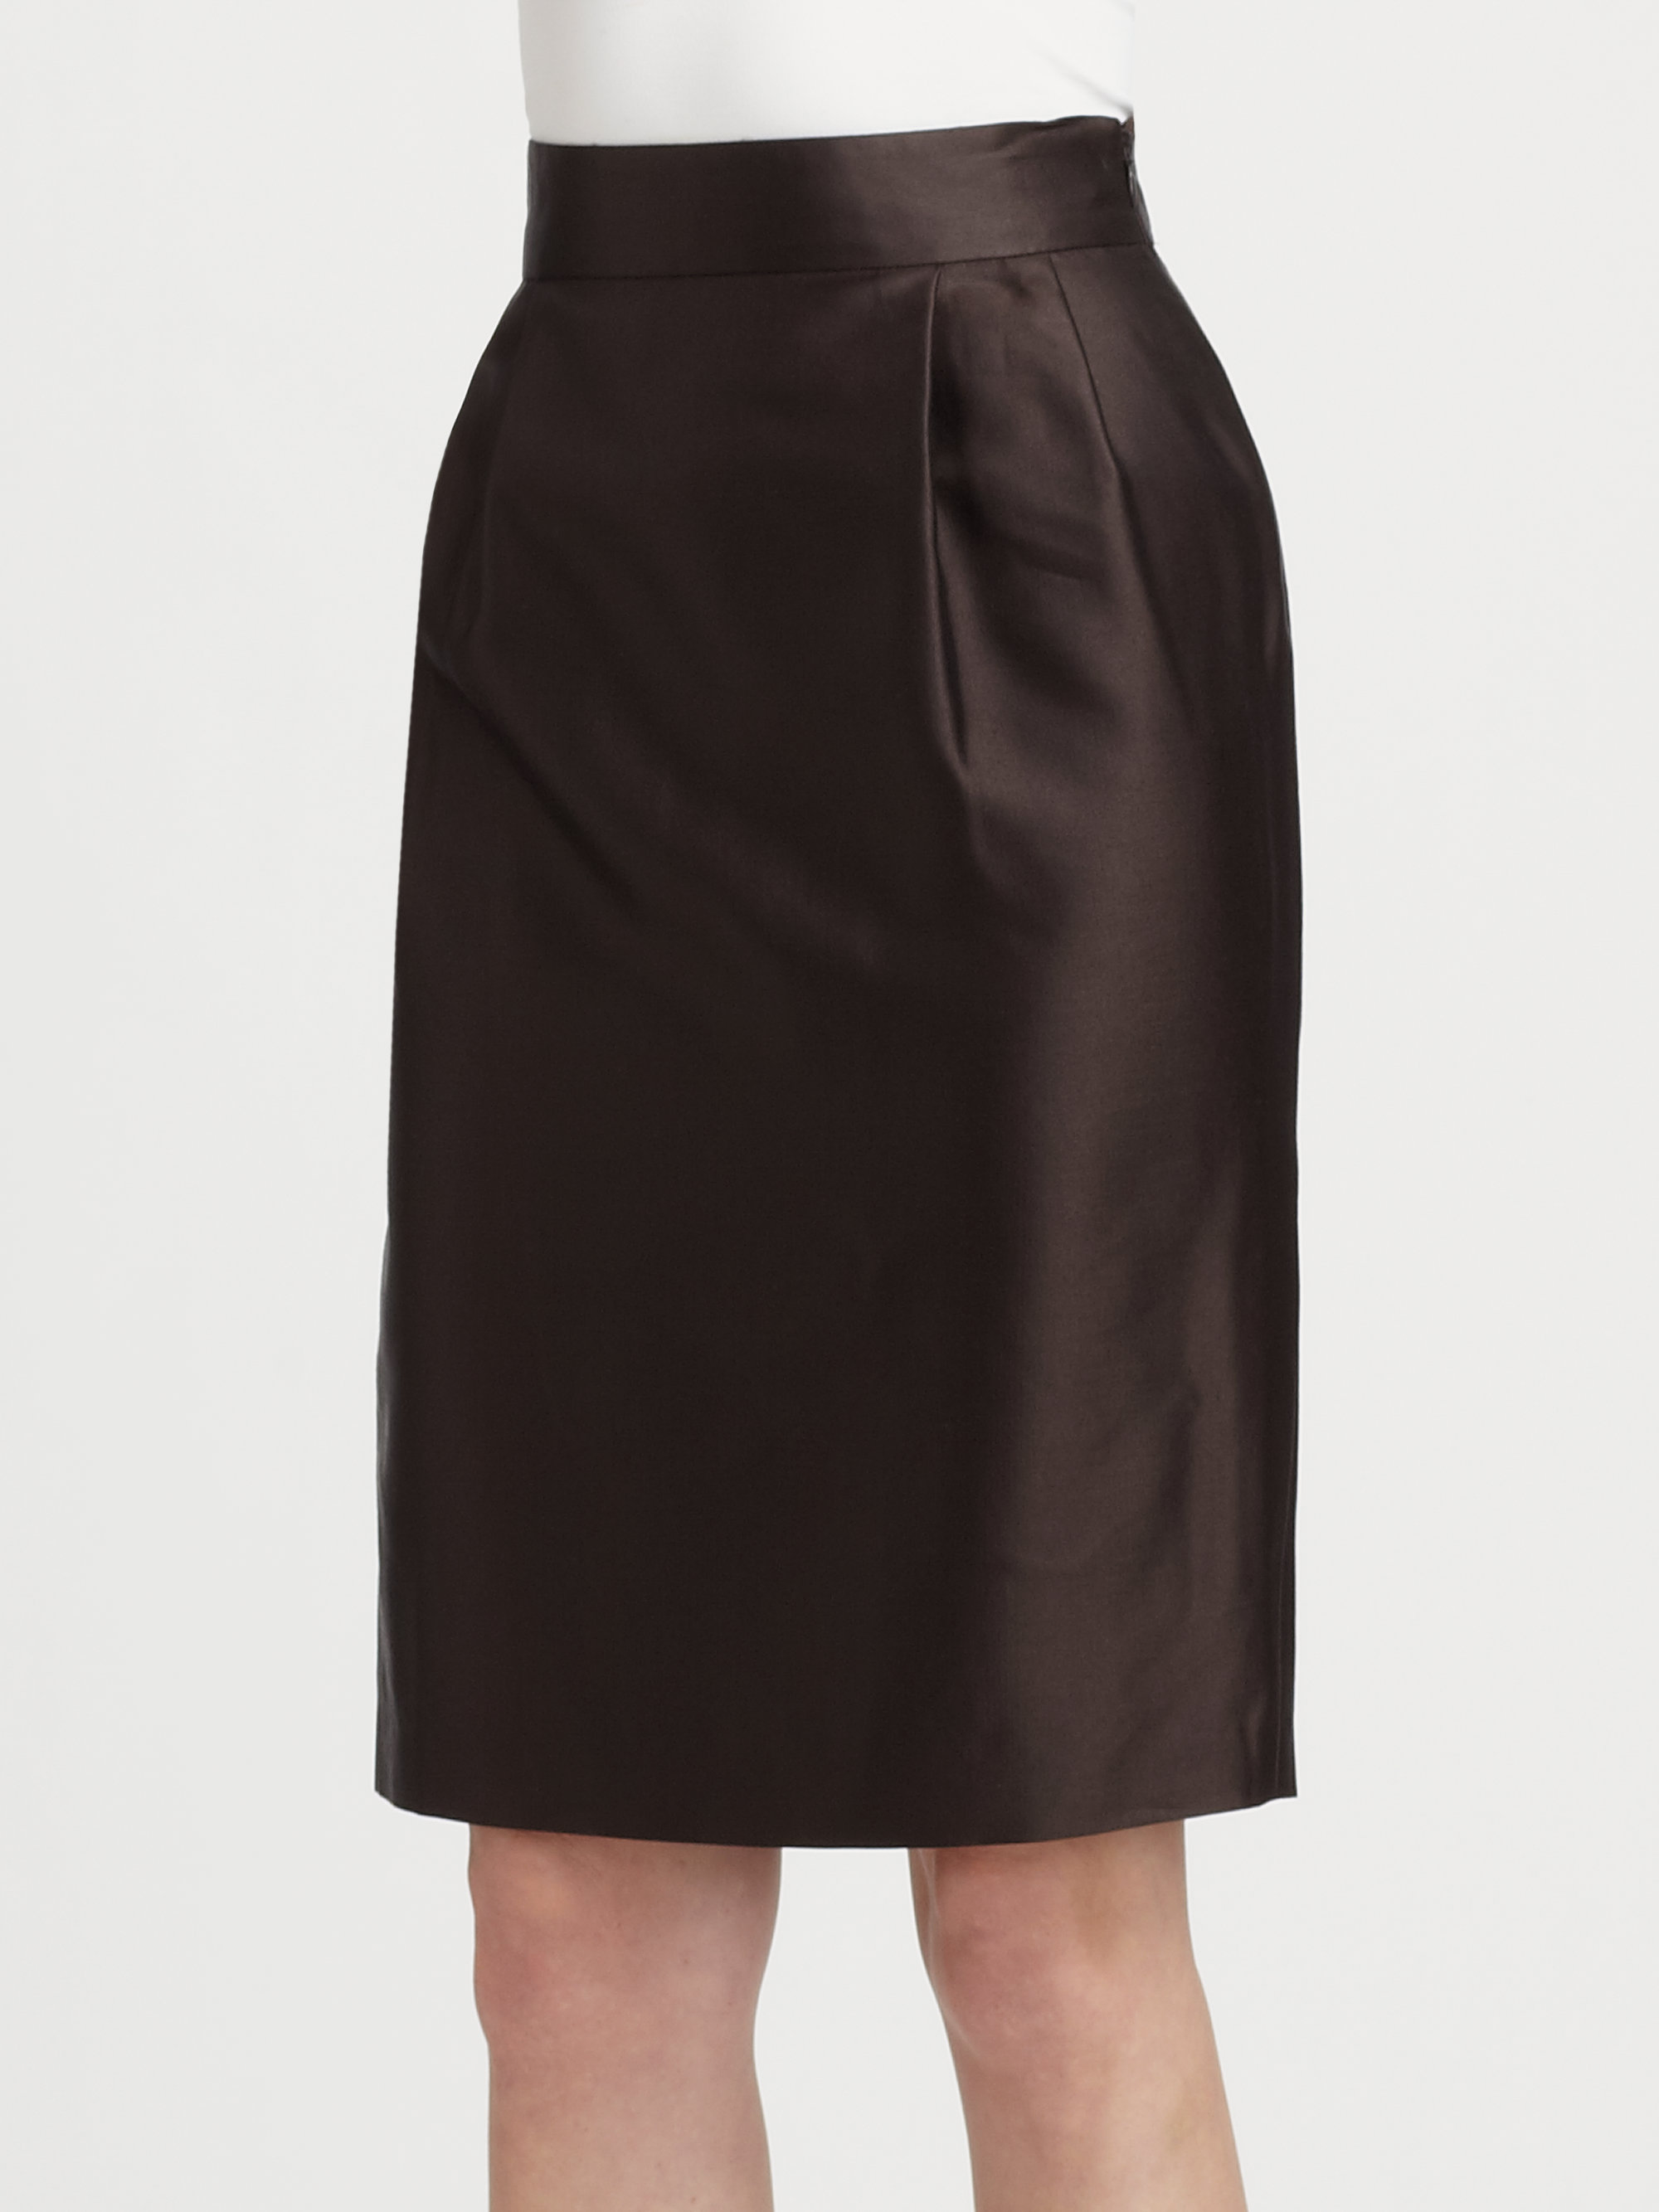 Shop dressbarn for the latest in pencil skirts. You'll discover on trend styles in a variety of patterns and prints that can be worn for any occasion. Add some extra flair to .